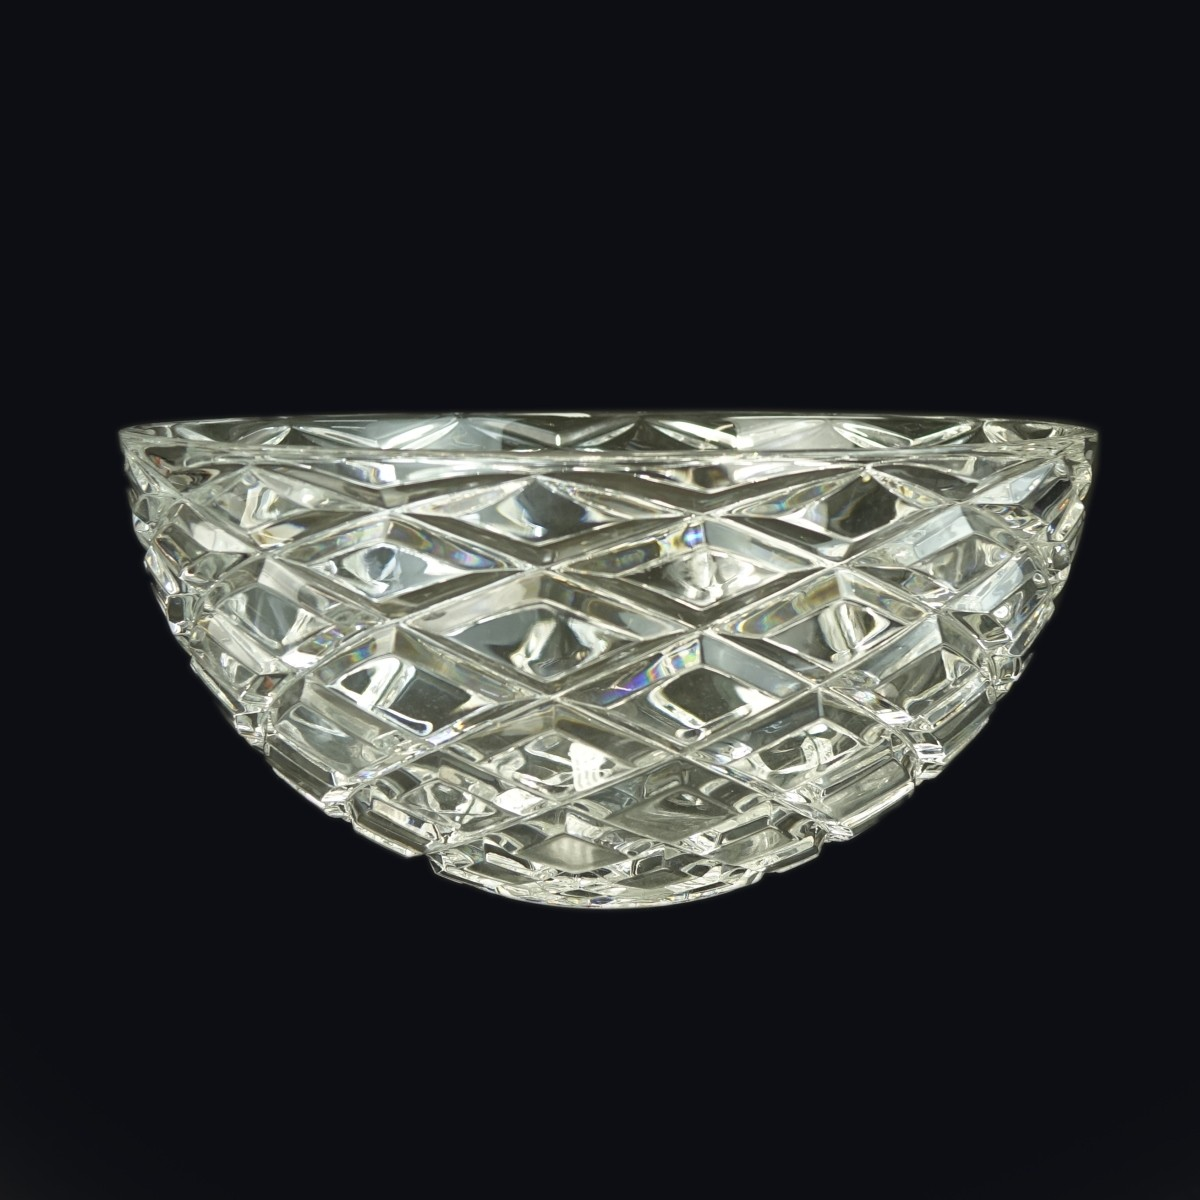 Tiffany & Co. Diamond Cut Crystal Bowl